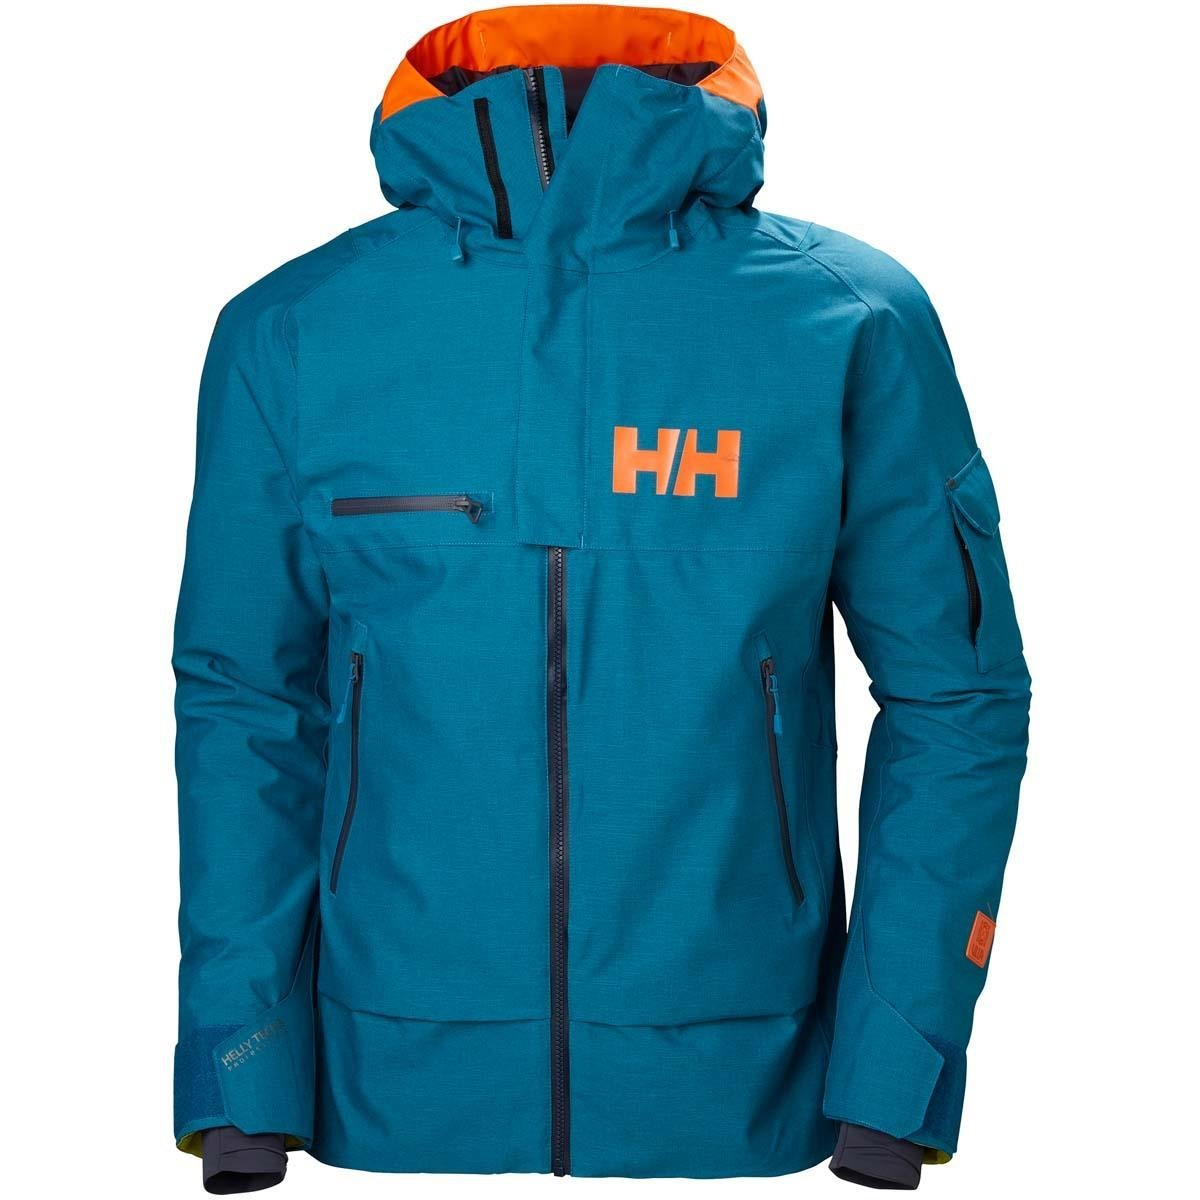 Helly Hansen Garibaldi Jacket Celestial M: Amazon.es ...